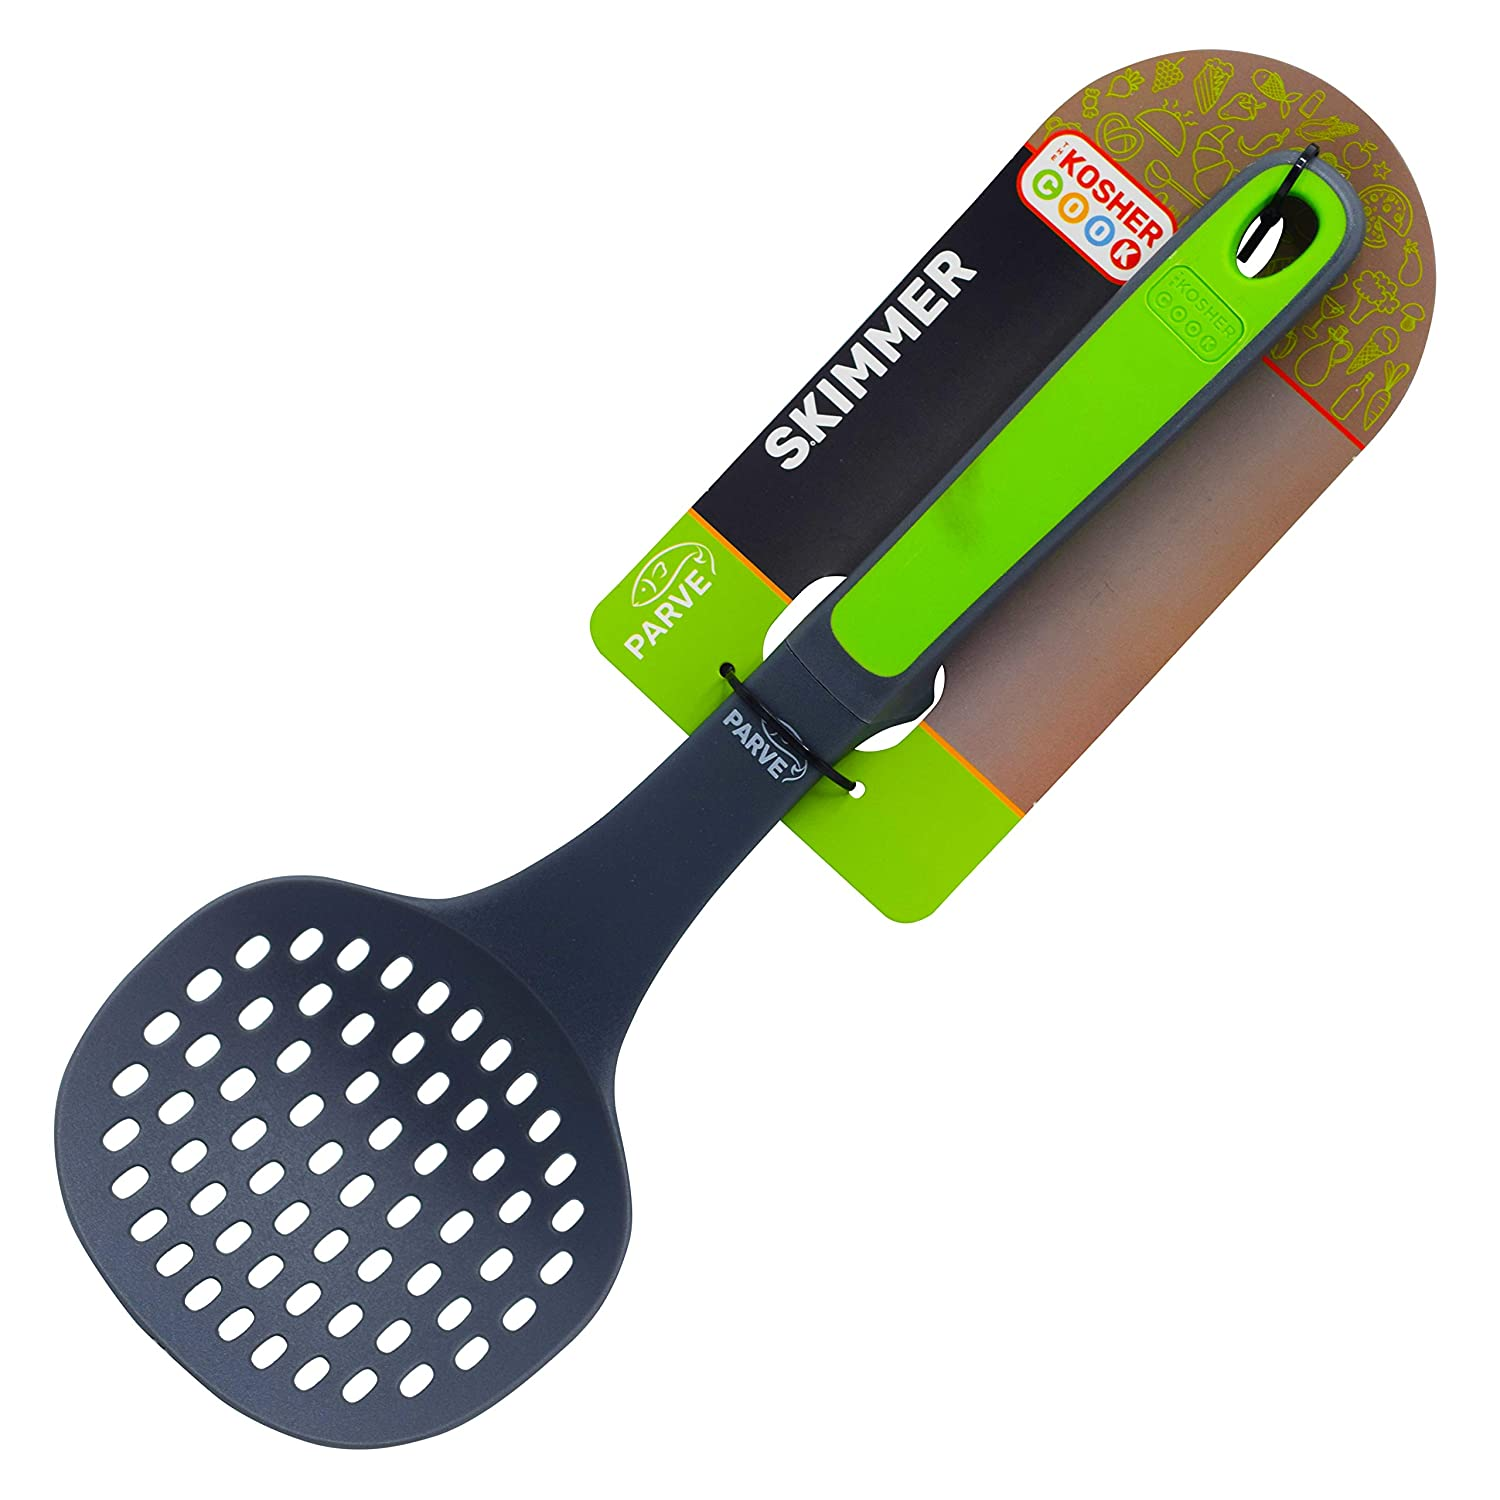 Dairy Blue Slotted Skimmer Spoon Color Coded Home and Kitchen Accessories by The Kosher Cook Gravy and Hot and Cold Foods Comfortable Handle Non Stick Silicone Stews Strainer For Soups